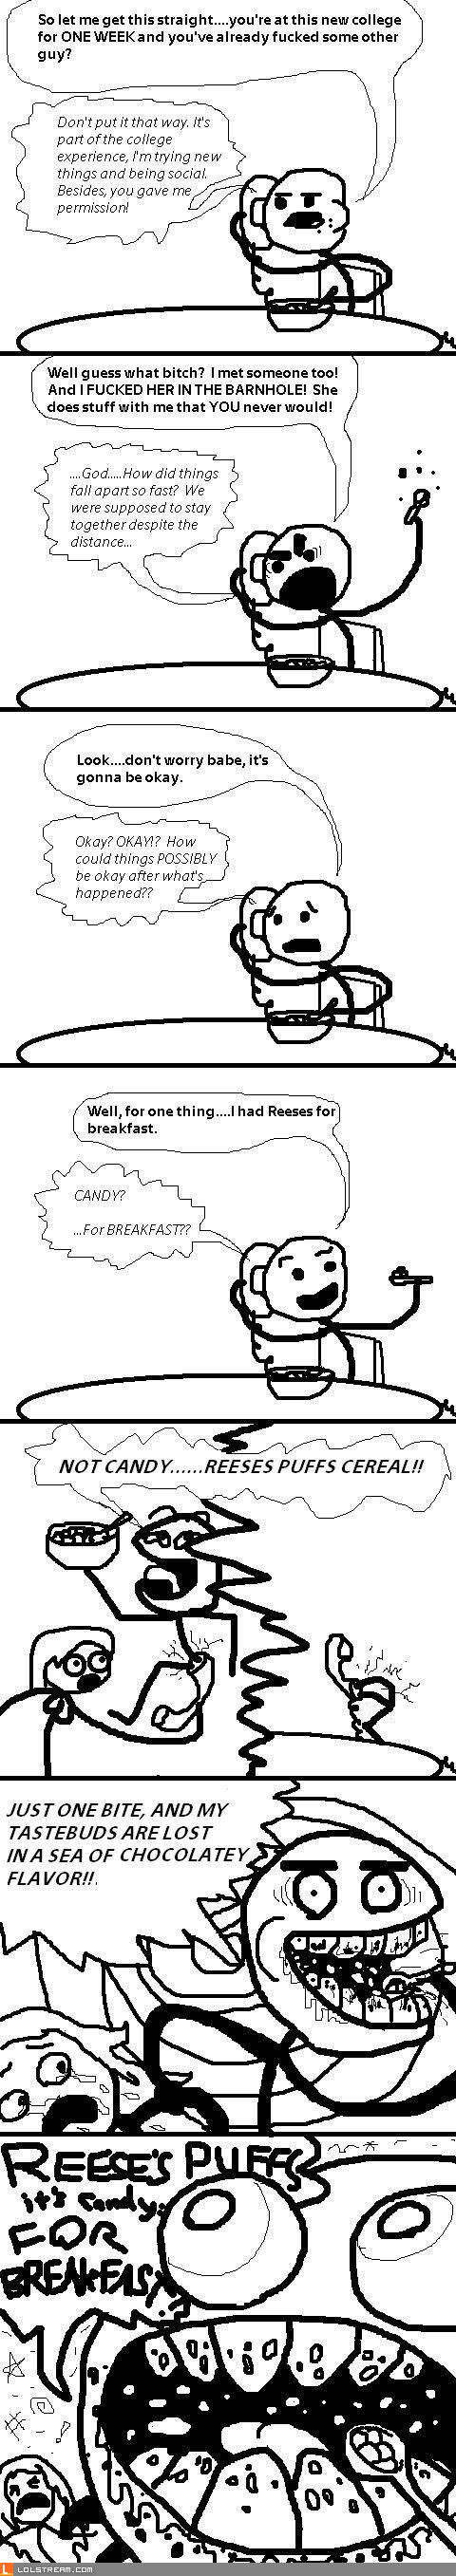 Reeses fix everything...